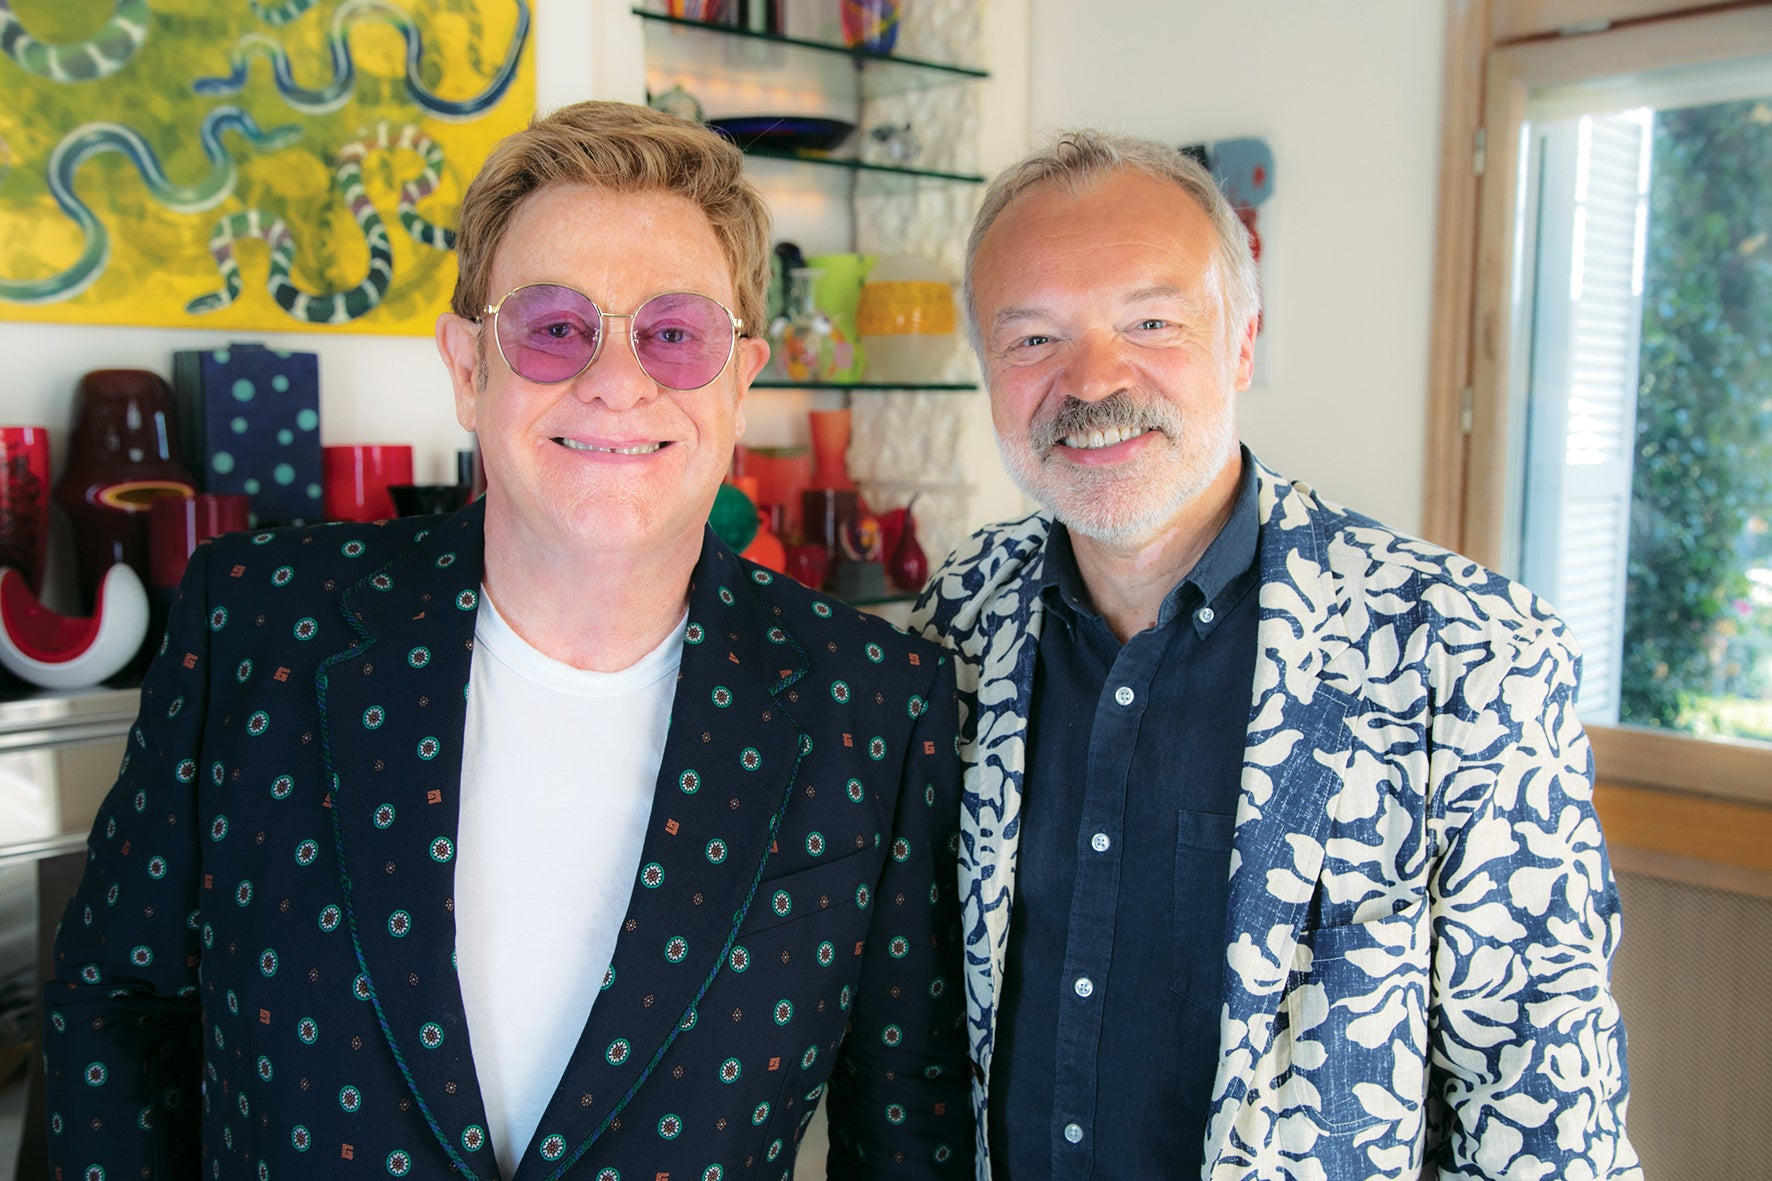 Elton John: Uncensored: a strange case of openness without candour